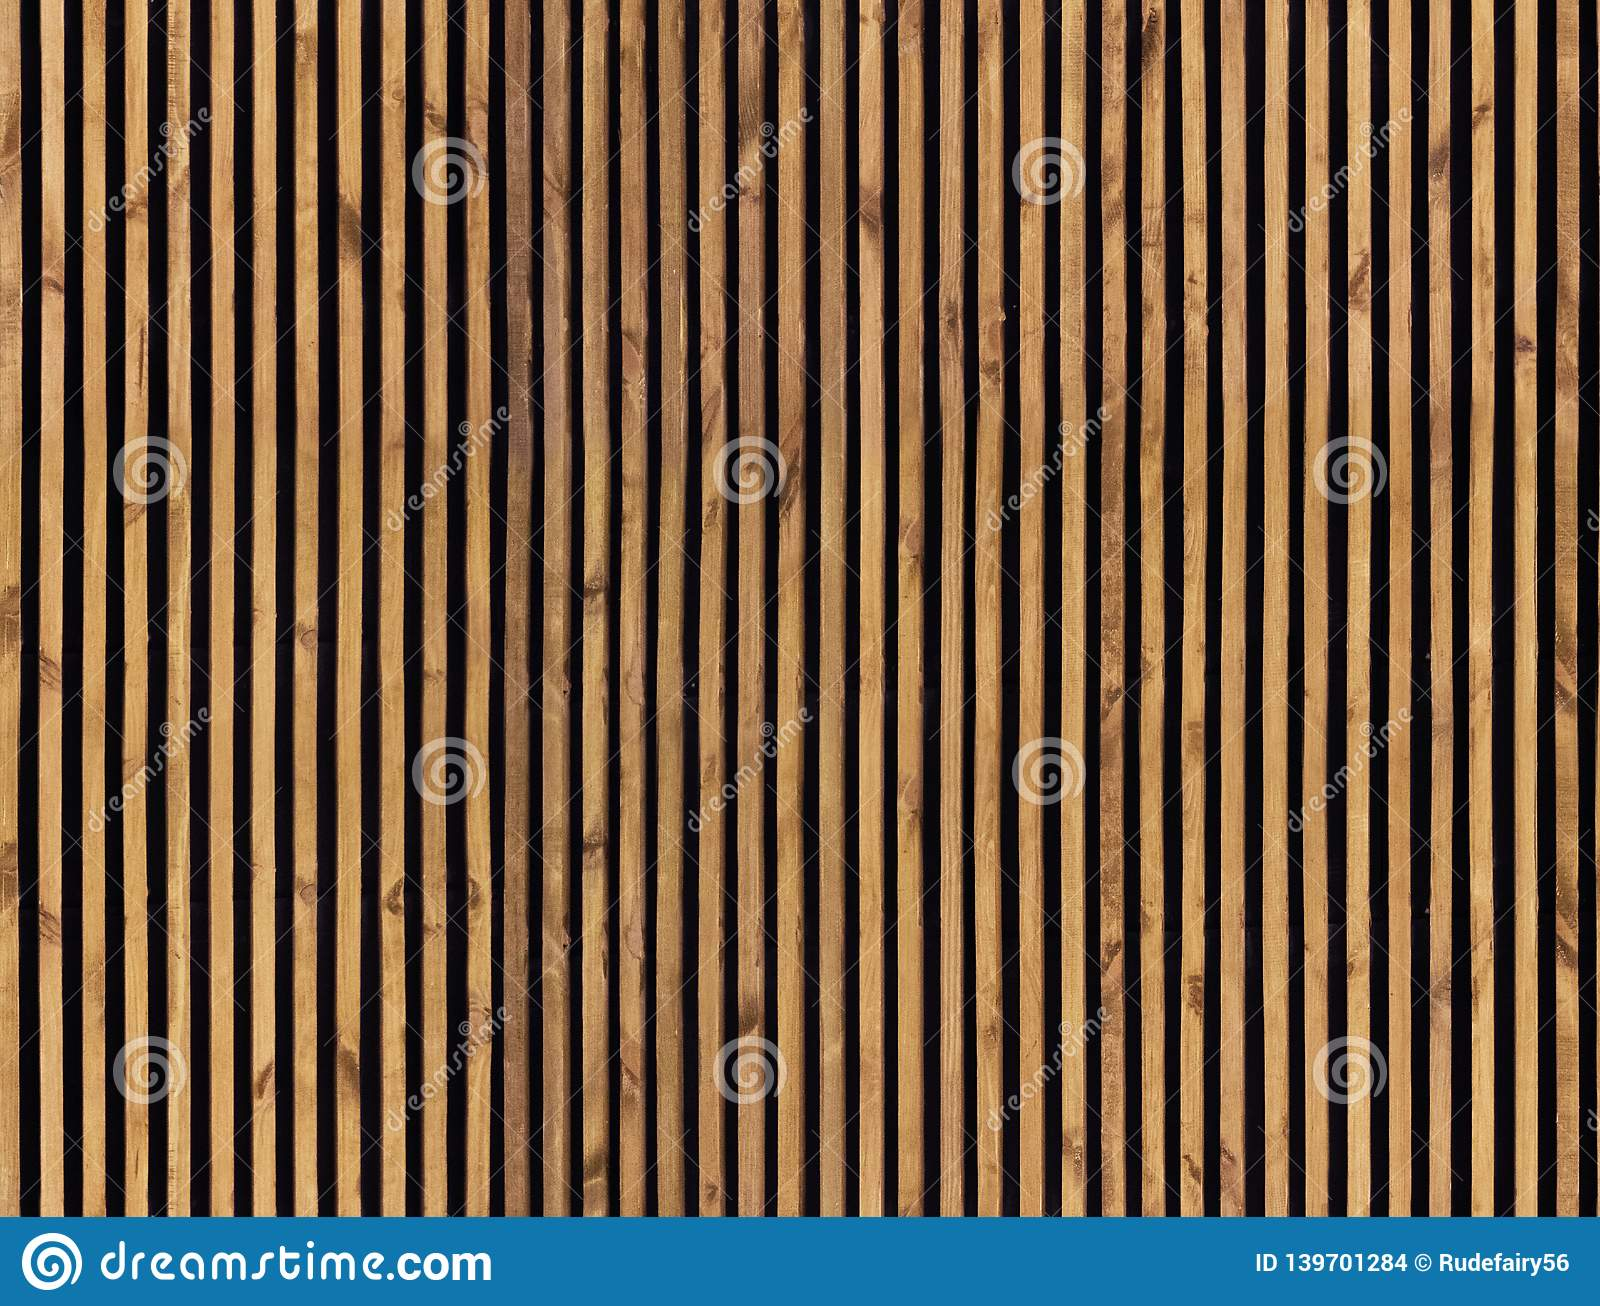 Seamless Pattern Of Wooden Slats Stock Photo Image Of Material Design 139701284